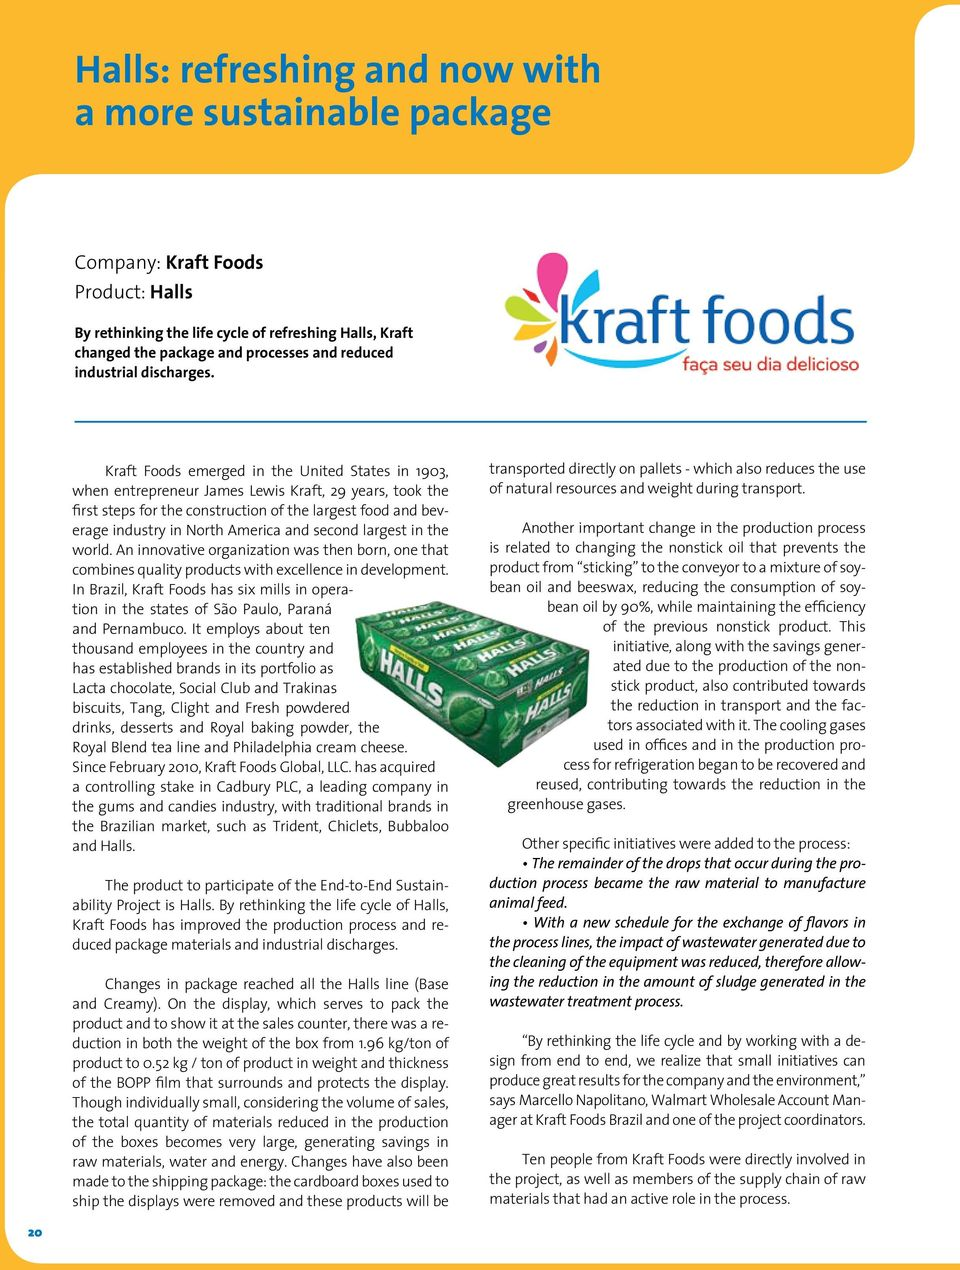 Kraft Foods emerged in the United States in 1903, when entrepreneur James Lewis Kraft, 29 years, took the first steps for the construction of the largest food and beverage industry in North America